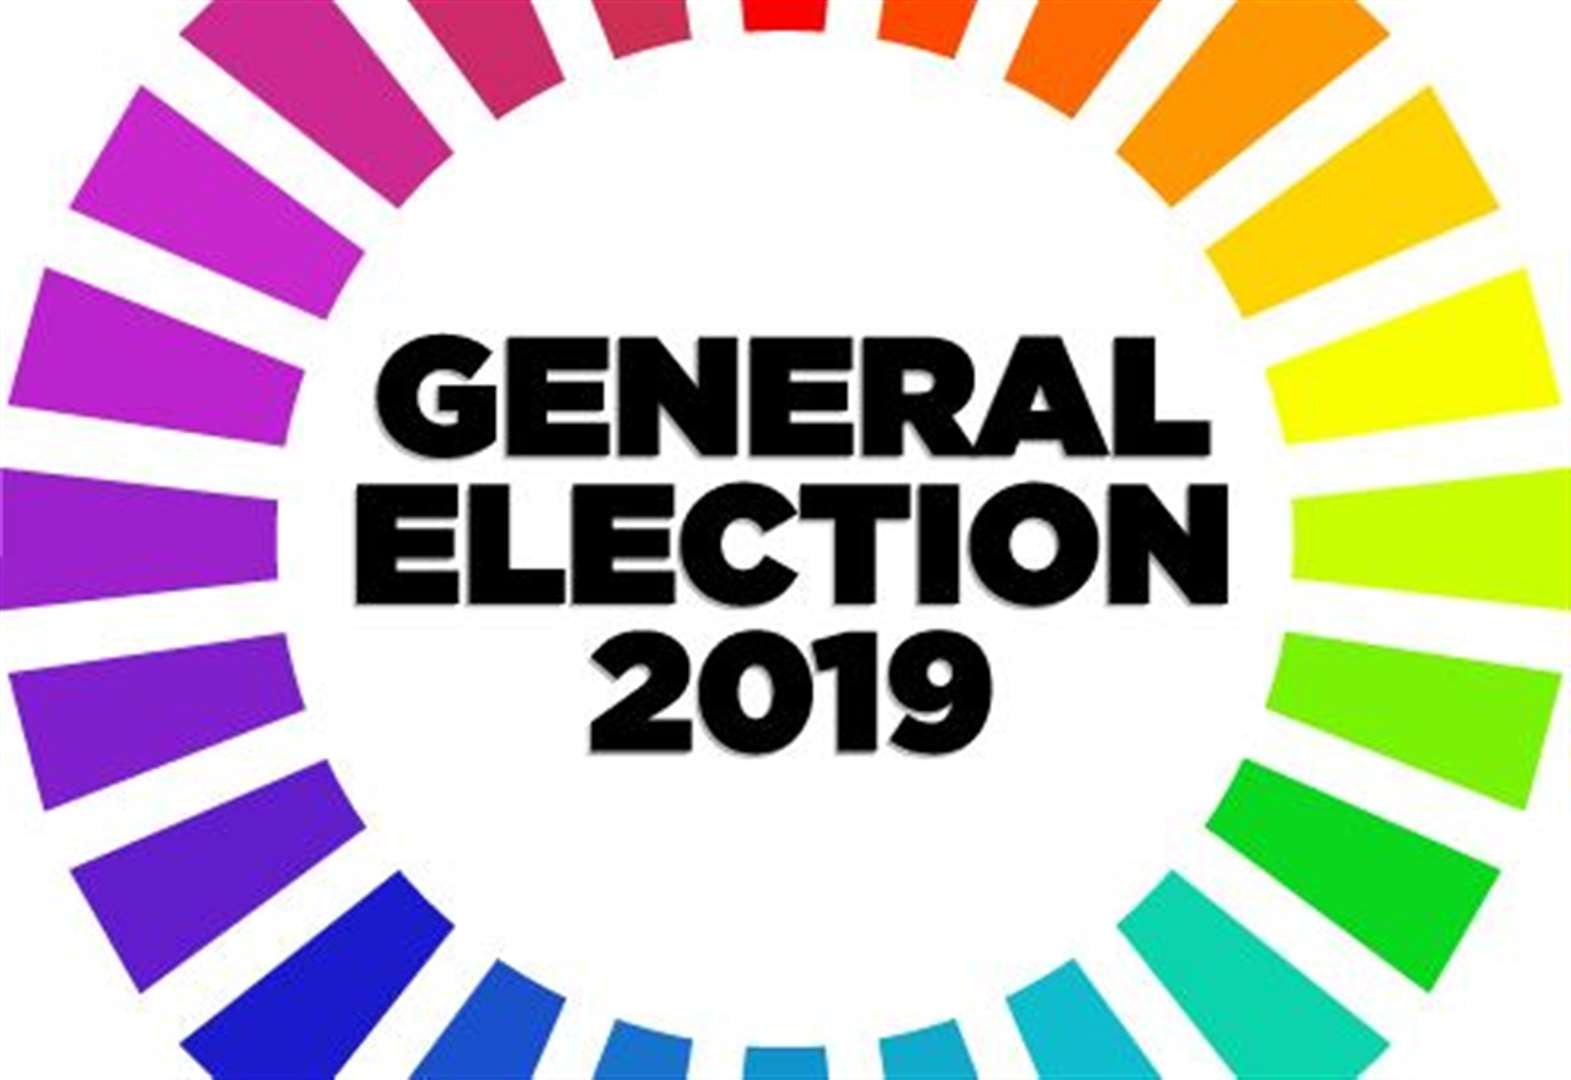 General Election: Official candidates announced for Bury St Edmunds, West Suffolk, South Suffolk, Central Suffolk and North Ipswich and South West Norfolk